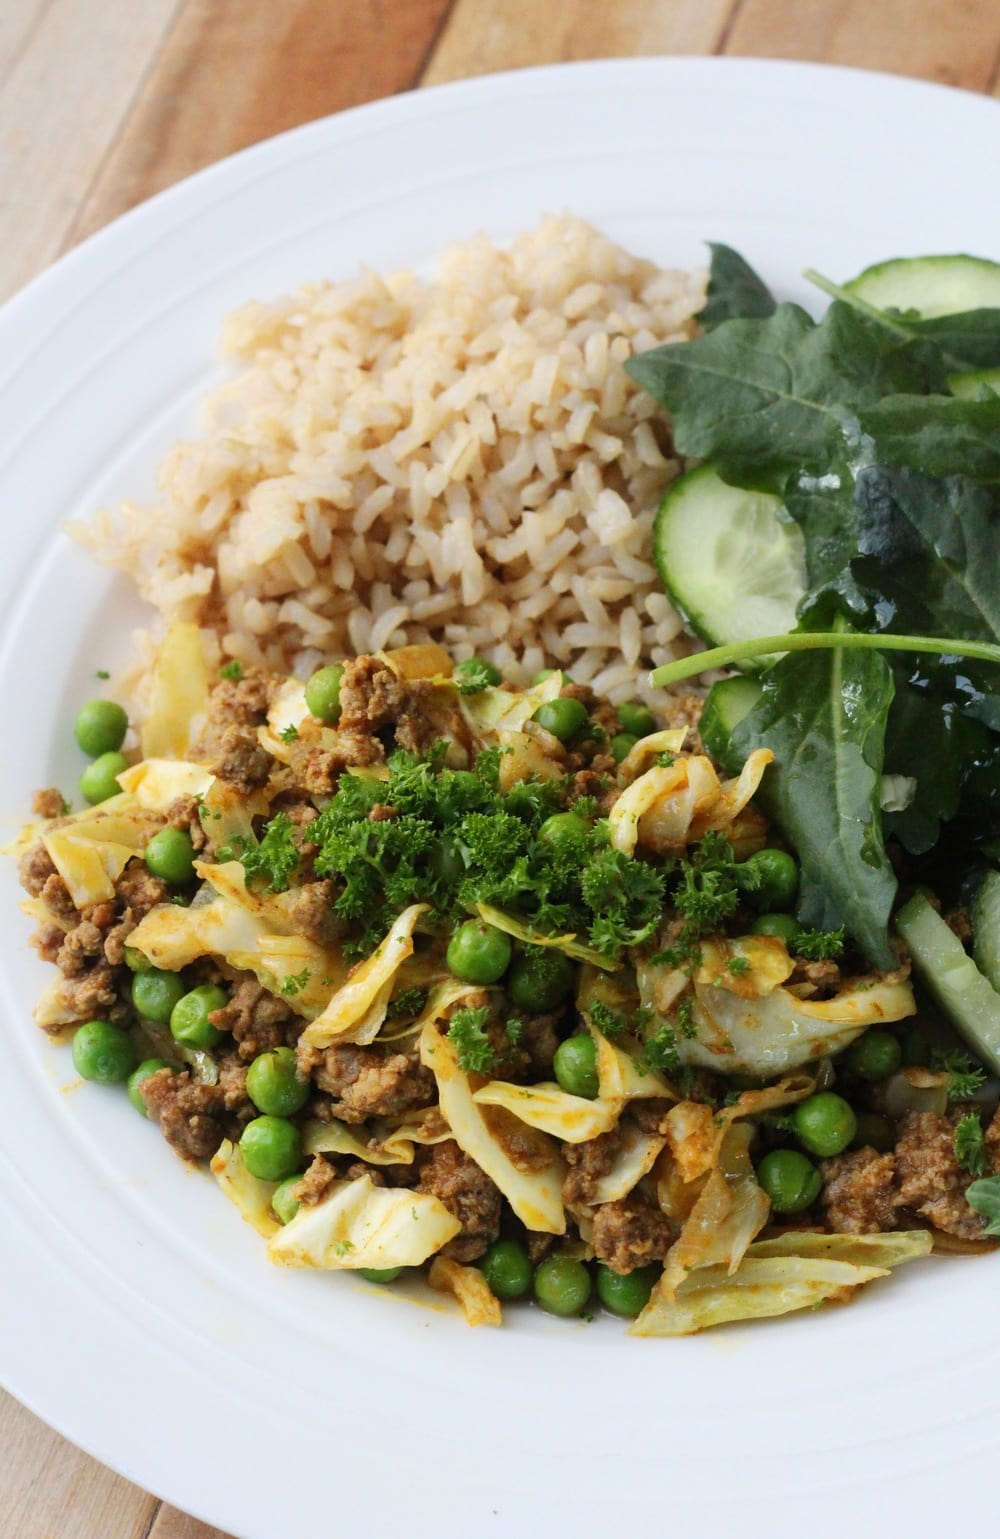 Close up of curried mince with brown rice and salad.